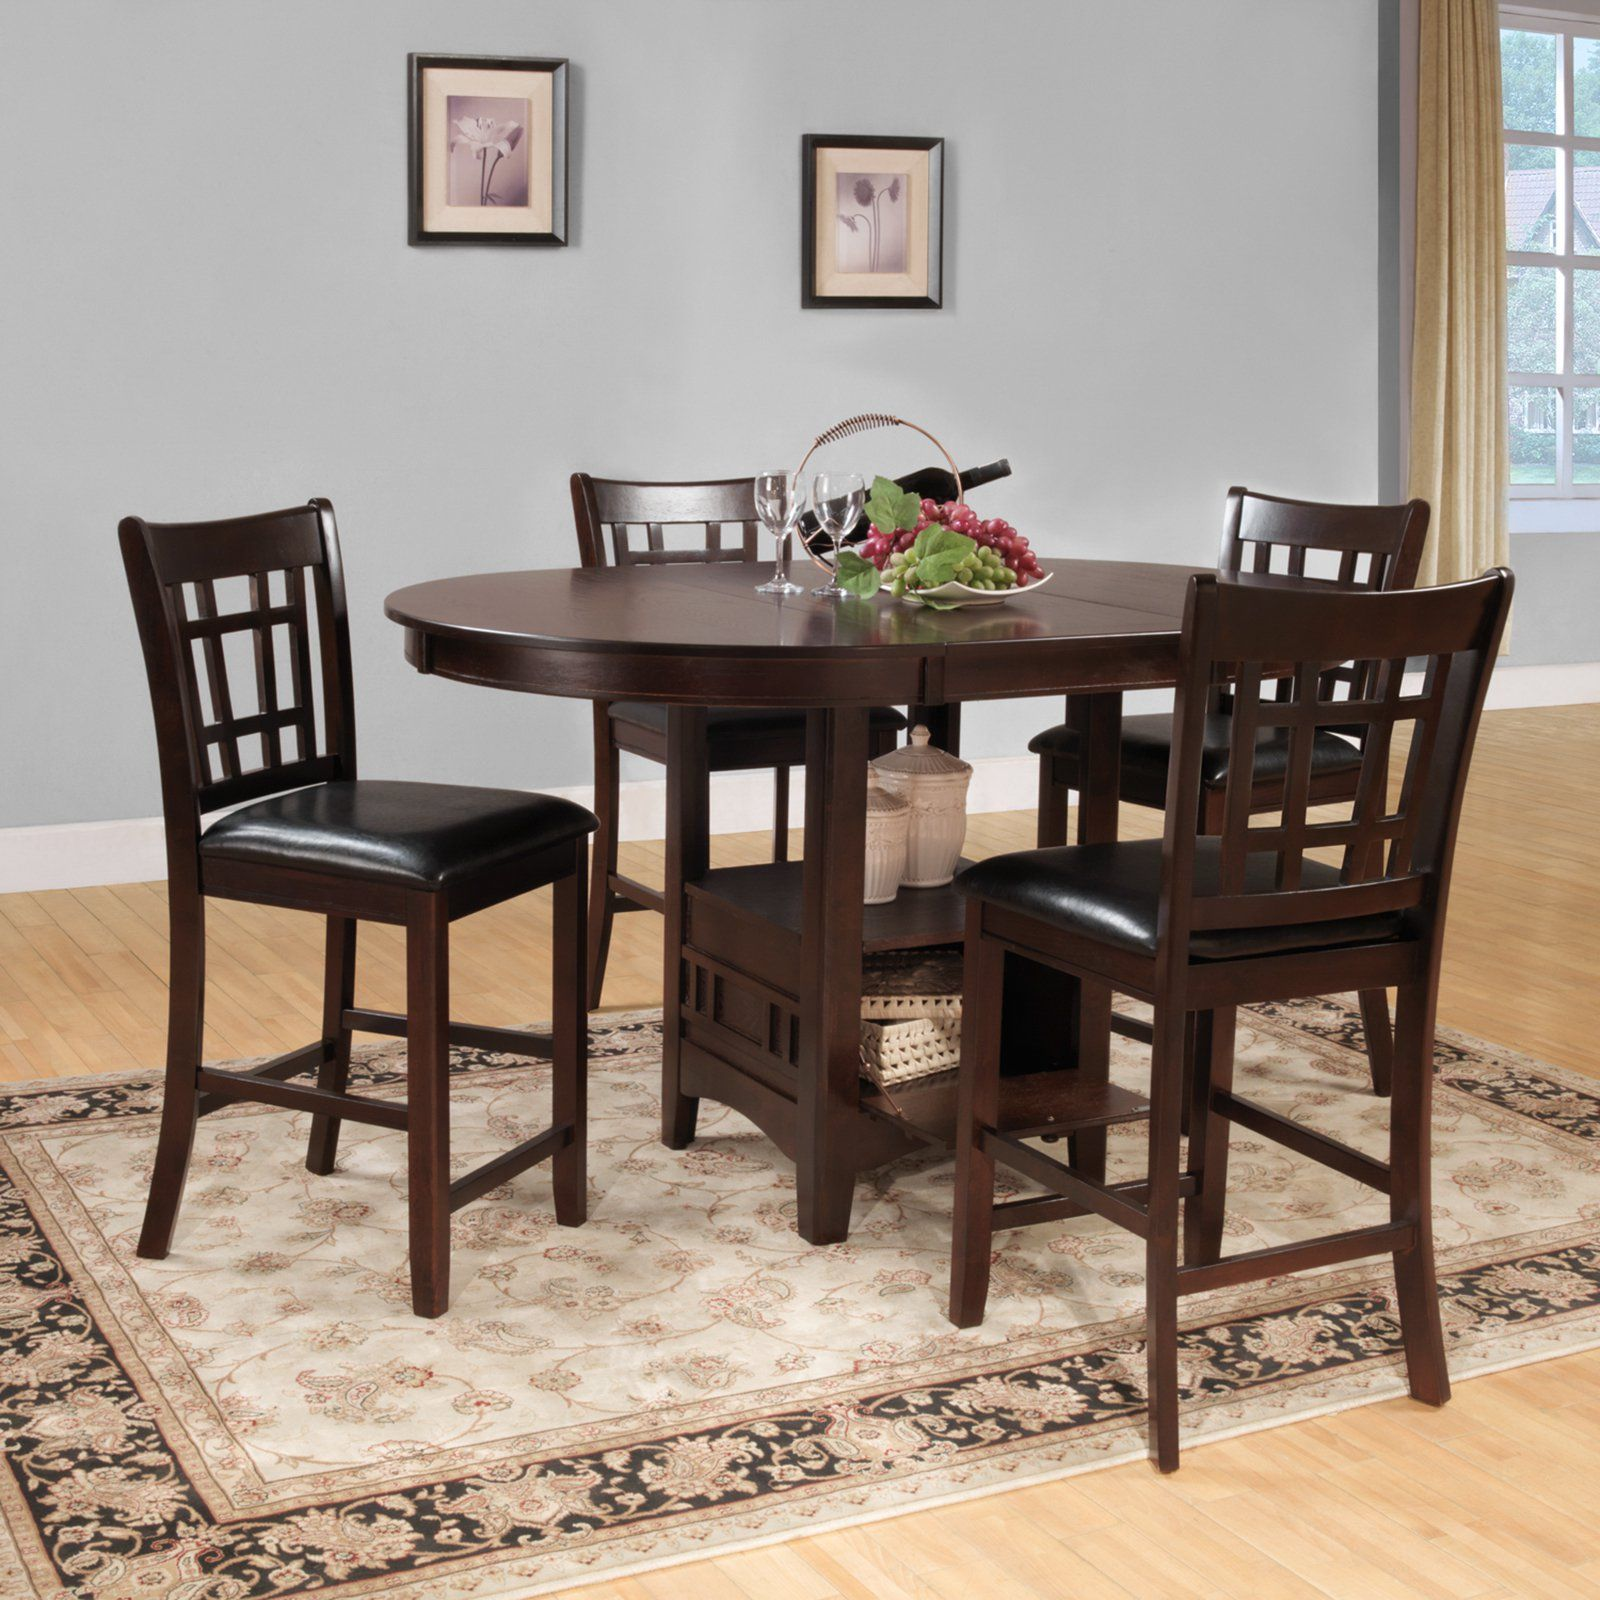 Homelegance Junipero 5 Piece Counter Height Dining Table Set